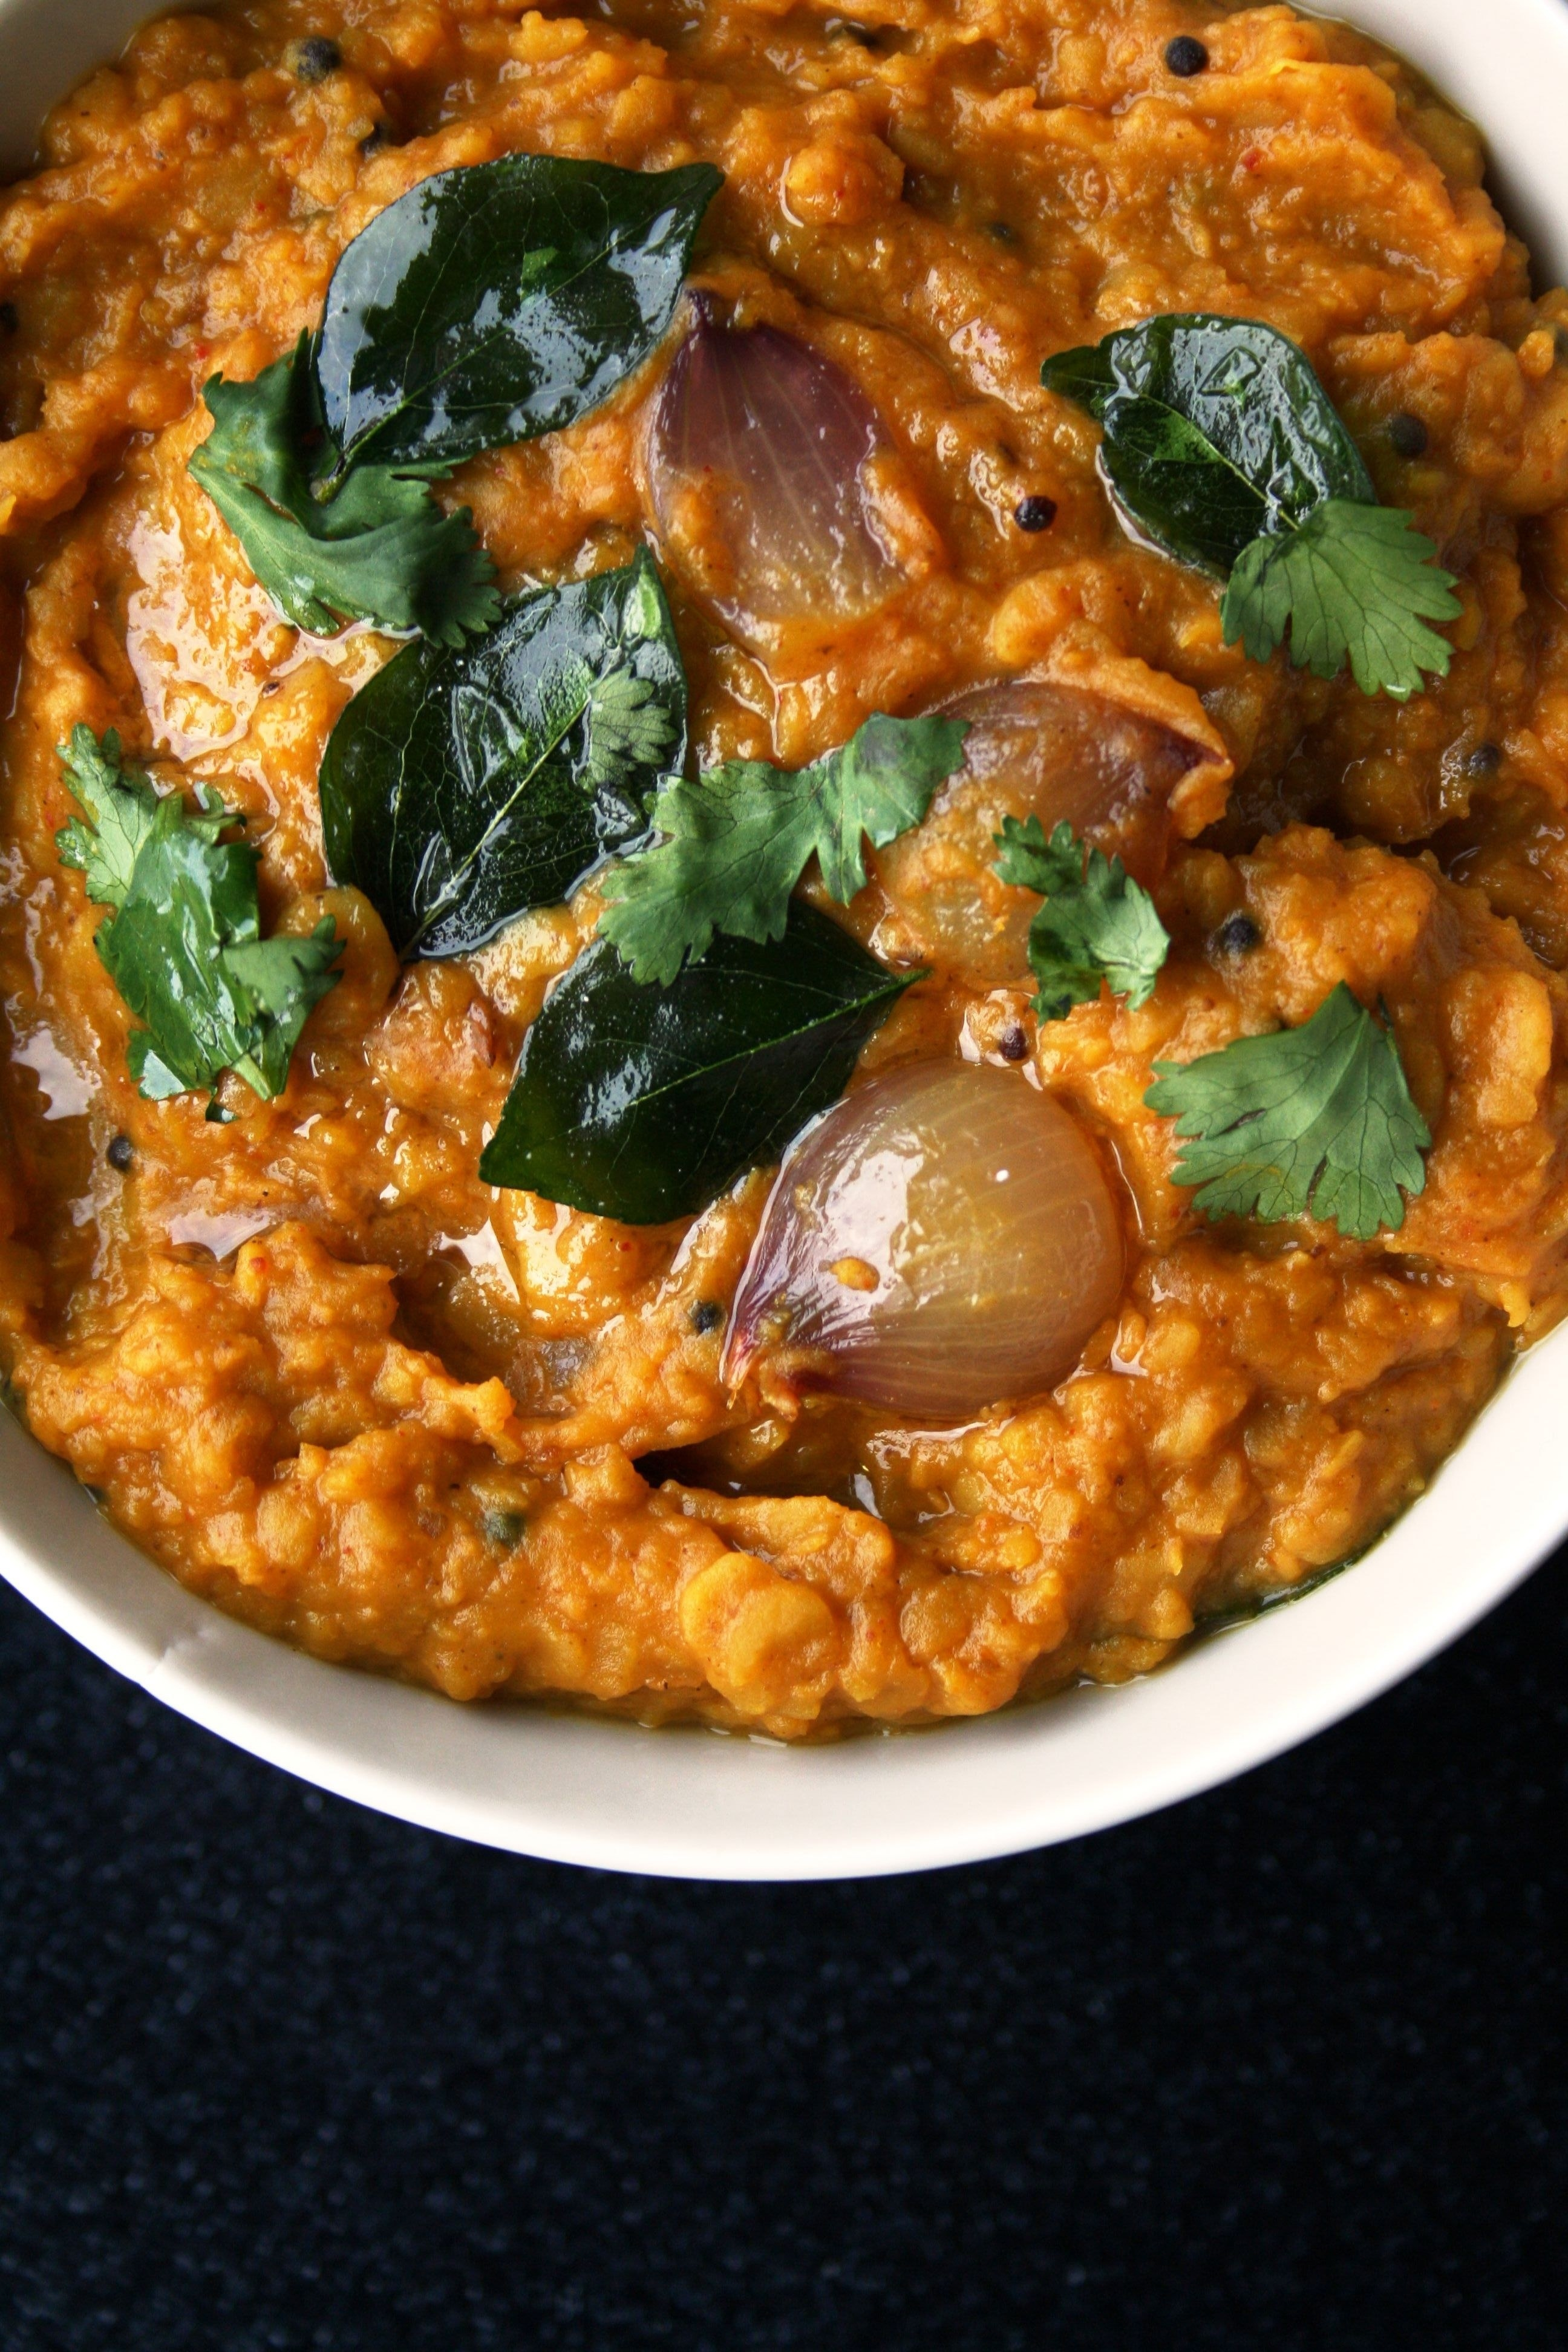 A bowl of lentil and vegetable curry.